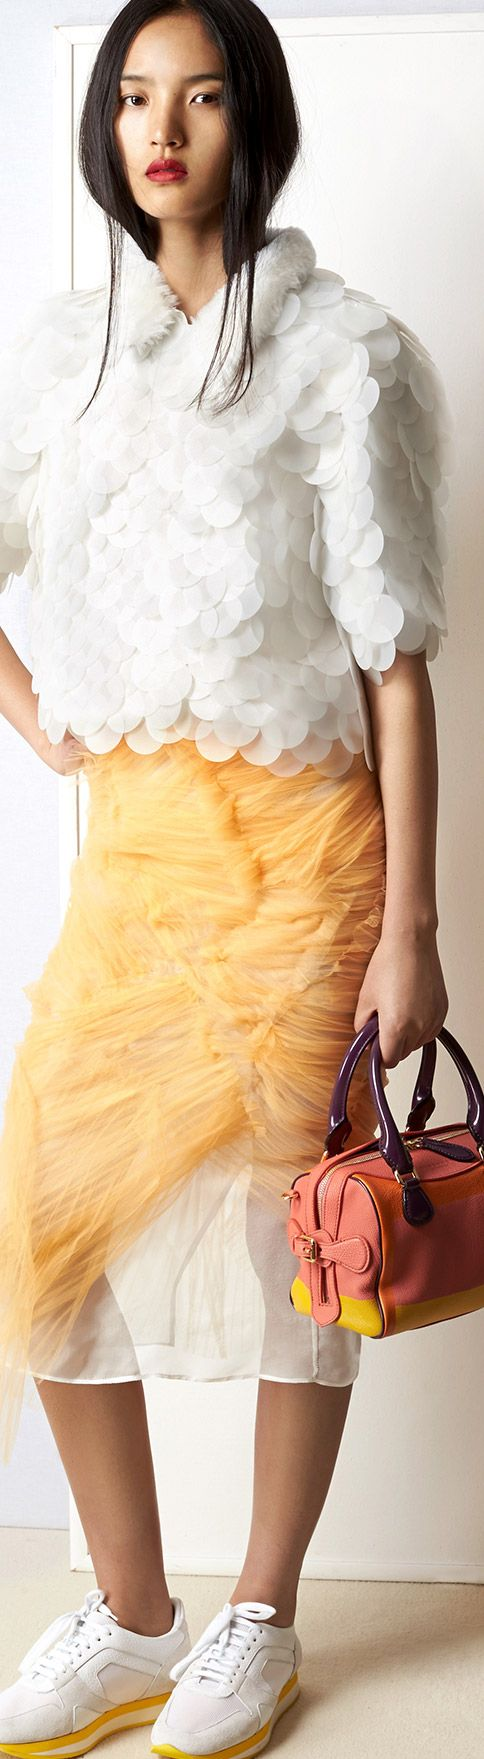 White sequins and cobweb tulle with The Mini Bee bag in bright hand-painted leather